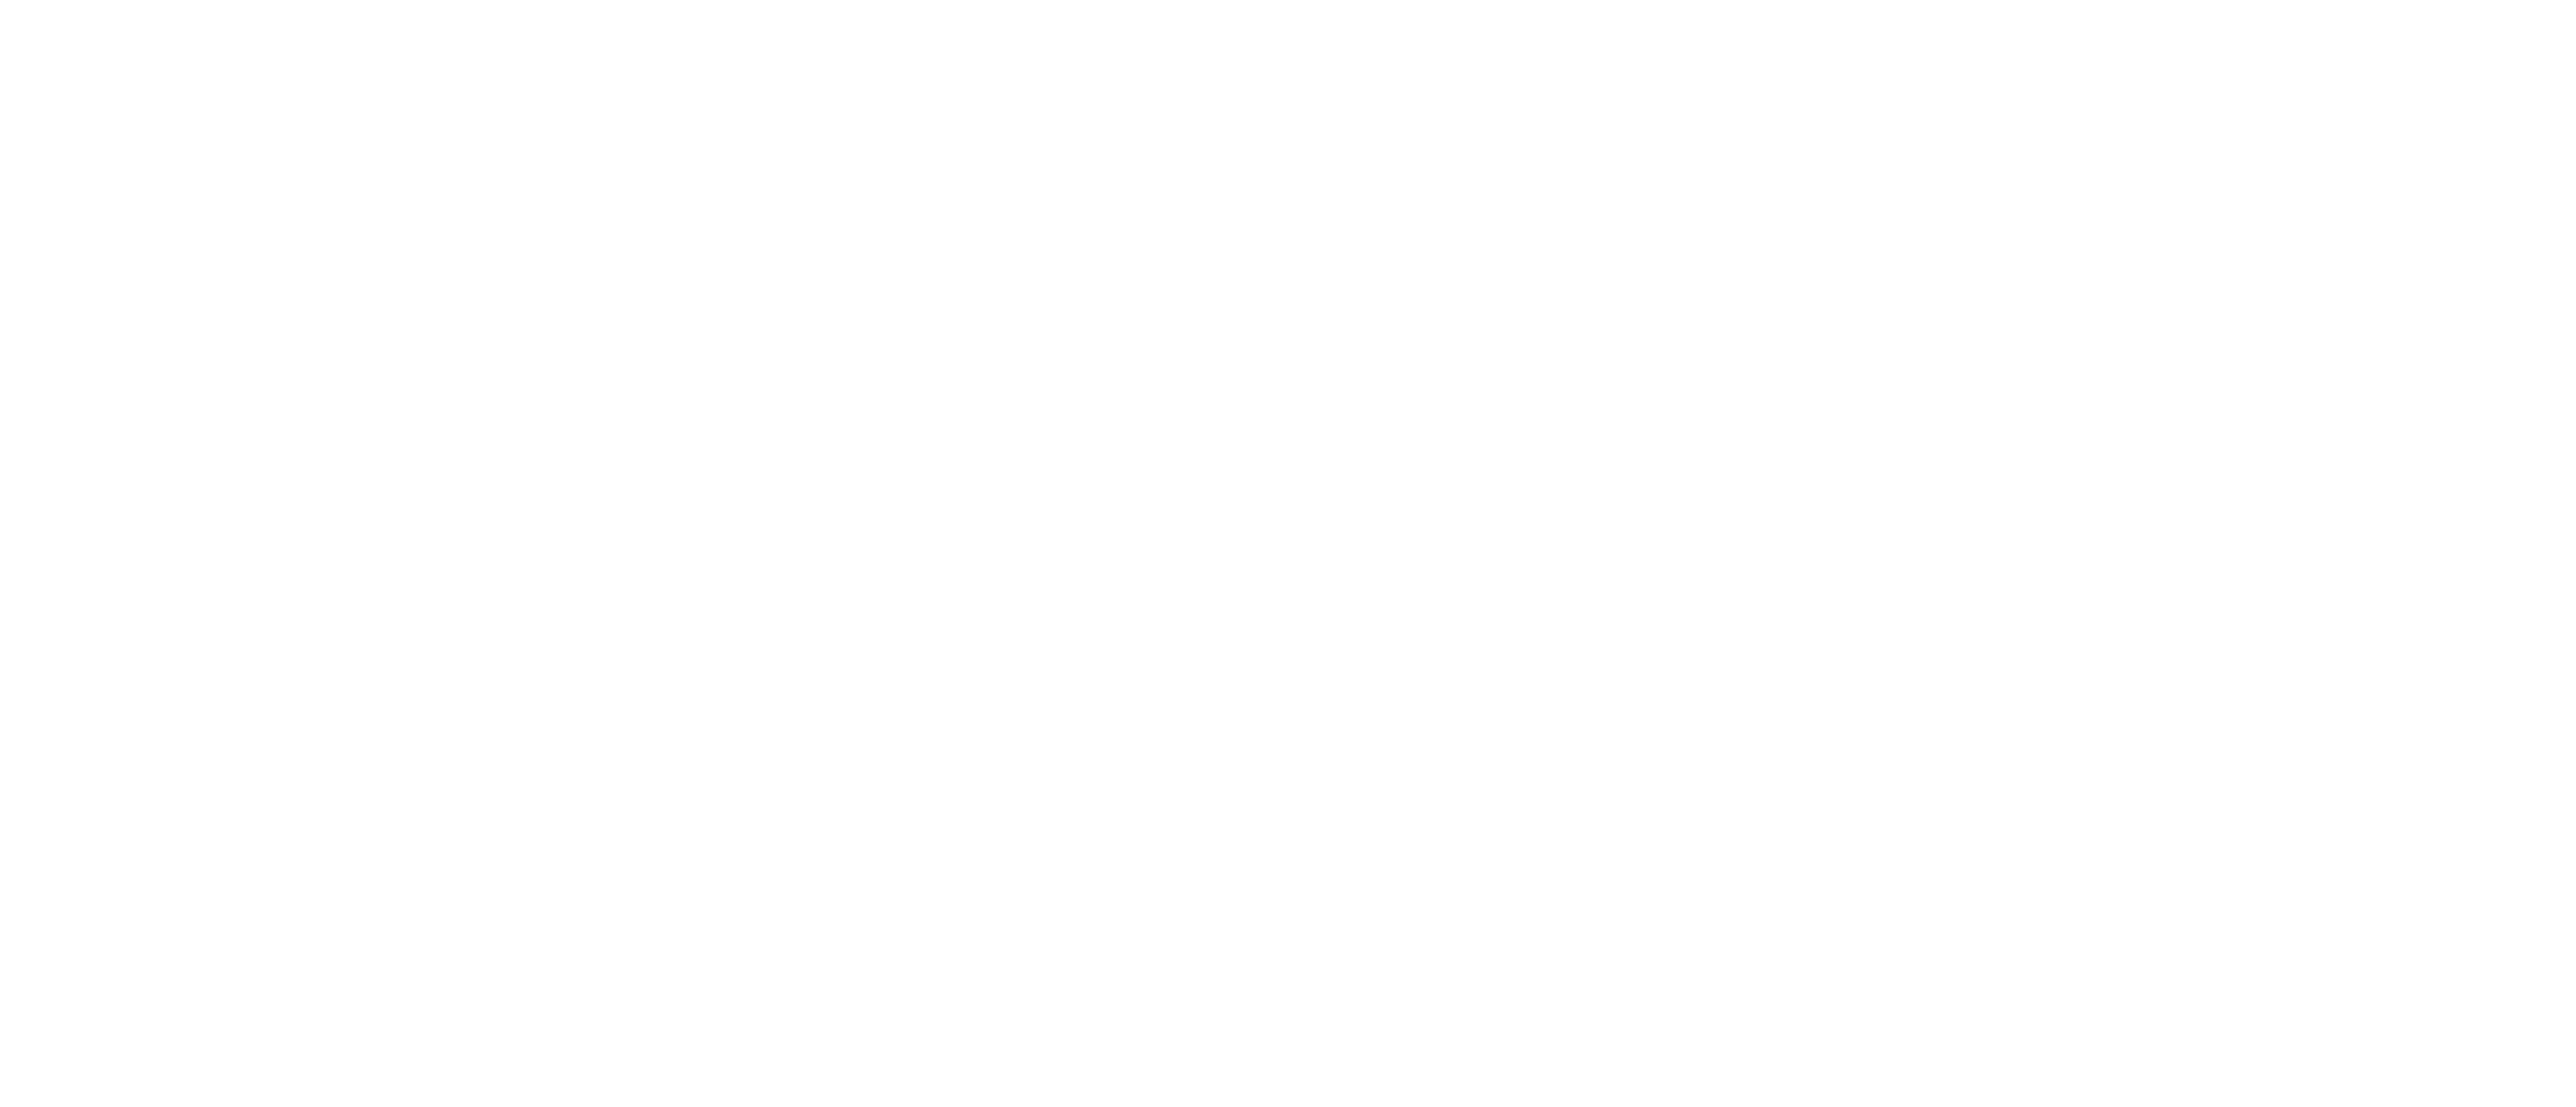 1000 Londoners a Chocolate Films Project